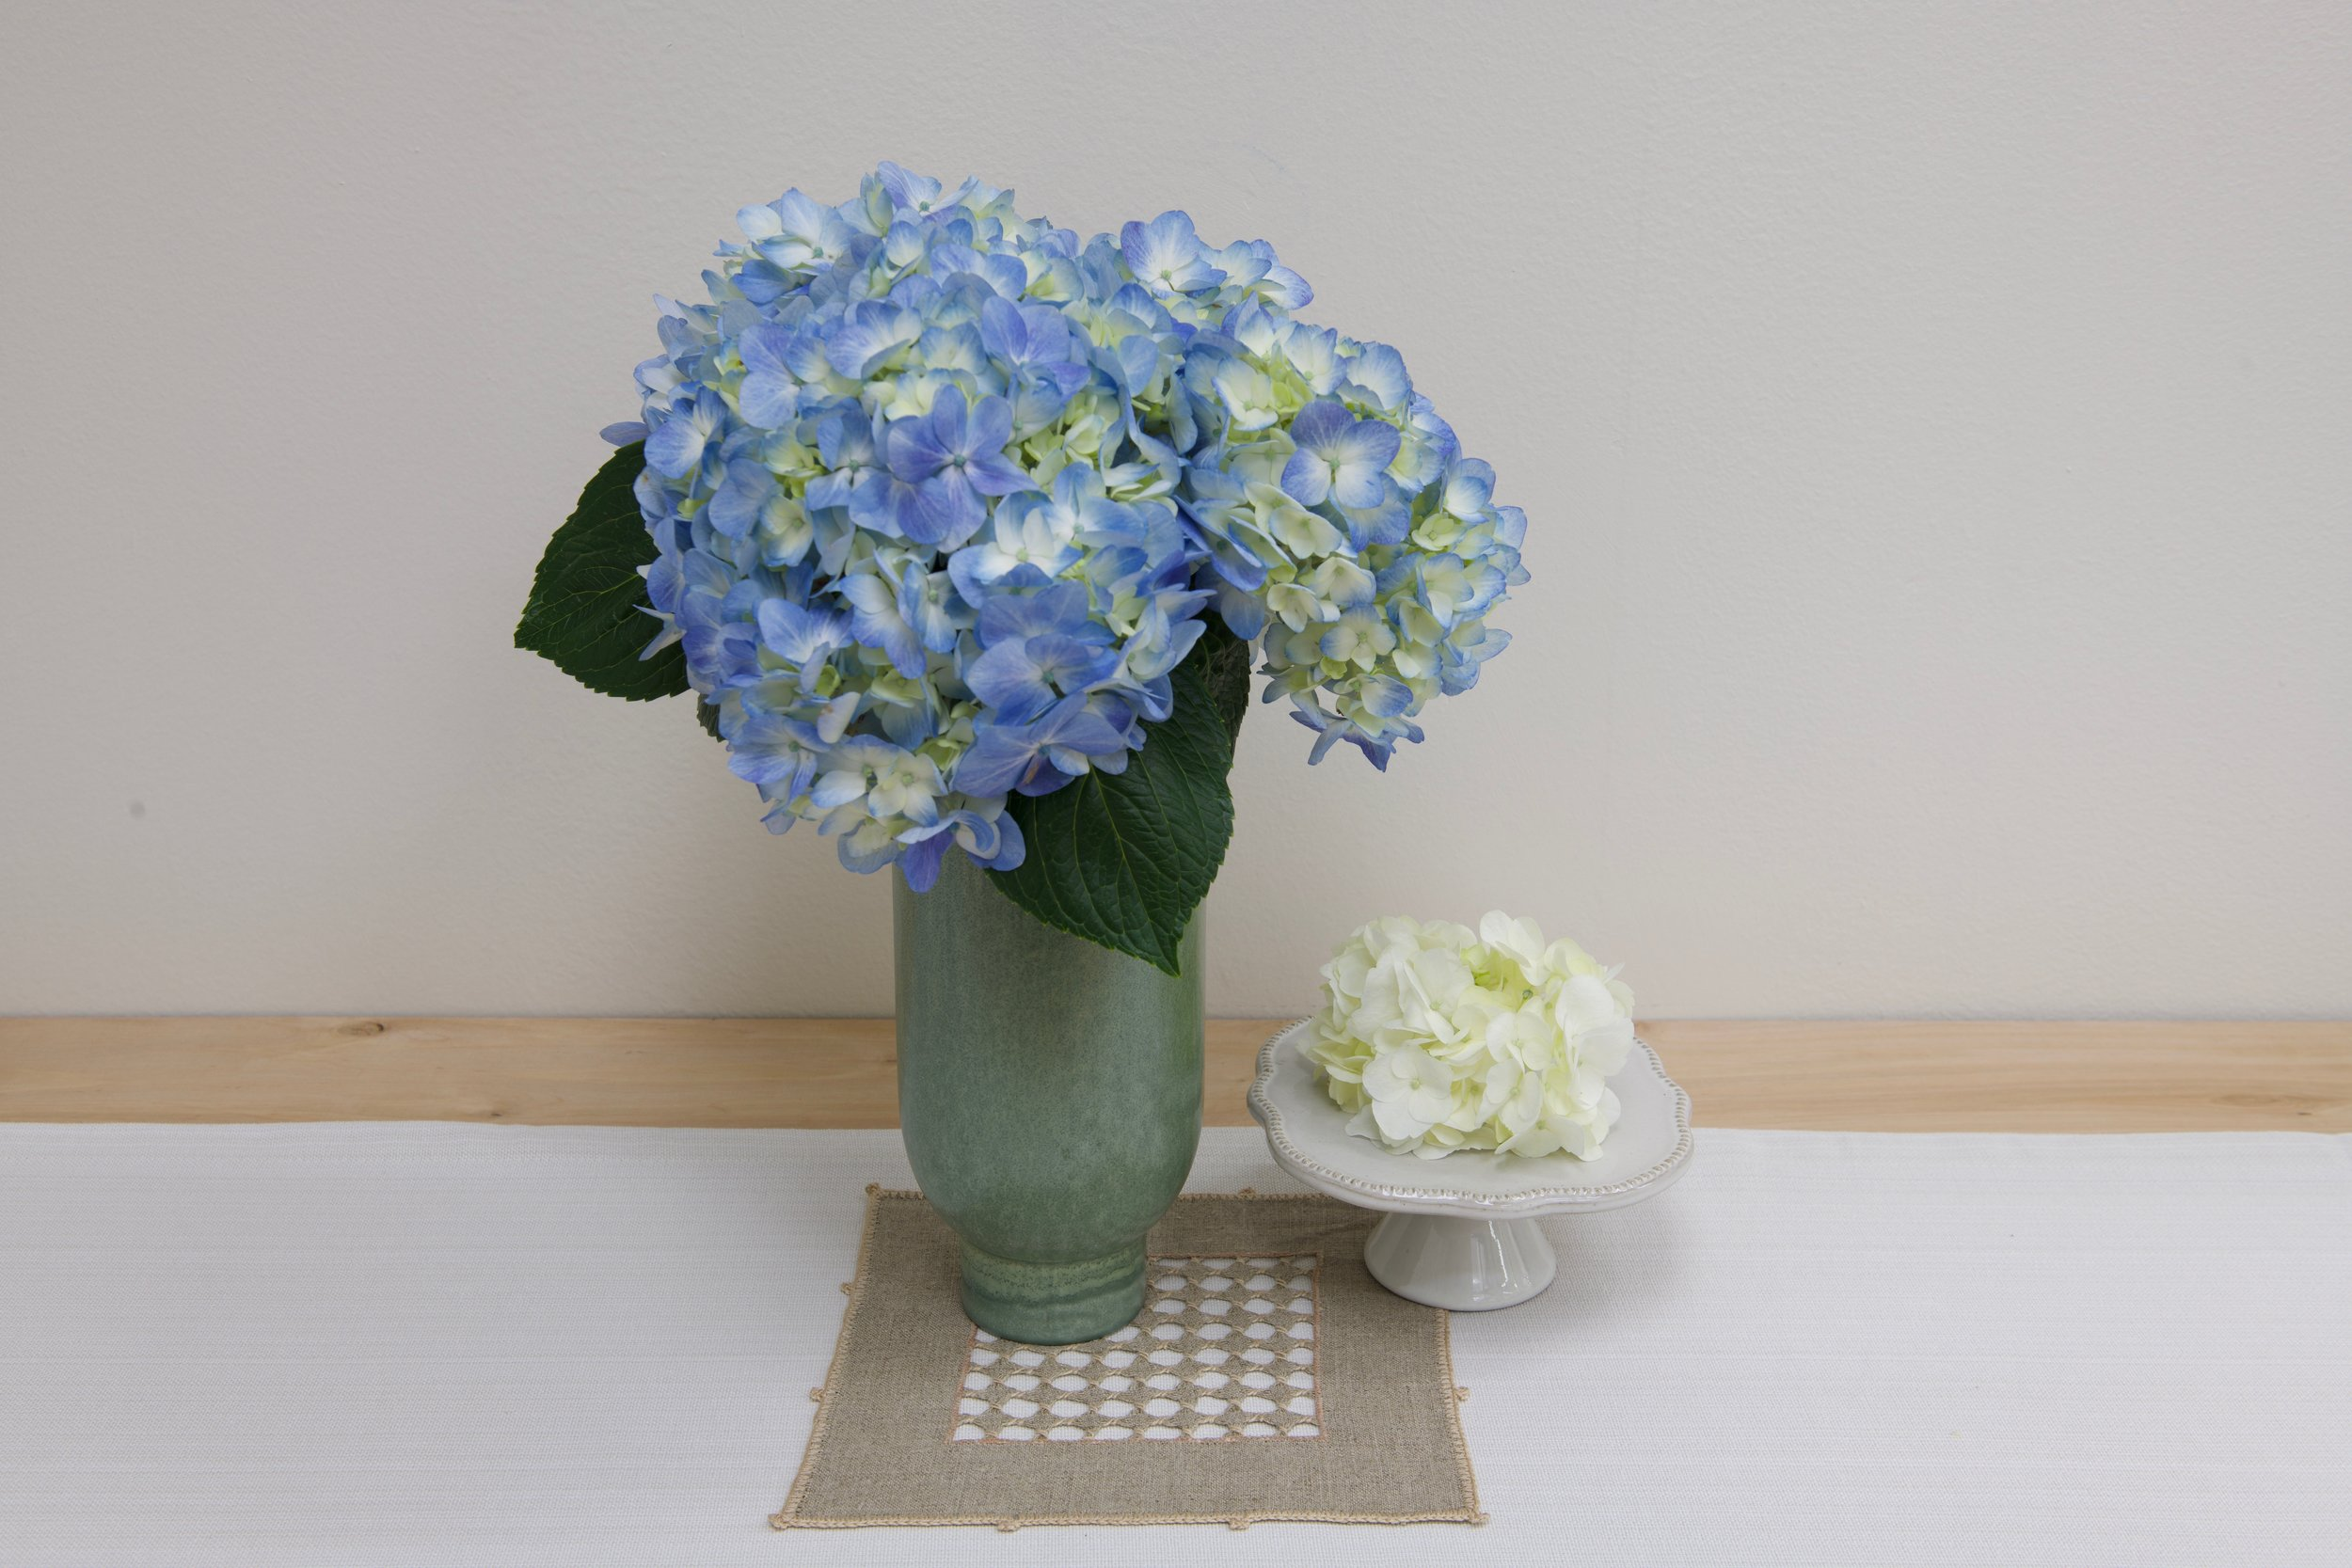 Blue and White Hydrangea. White Magnolia Hearth and Hand Pedestal on Table Runner from Target.